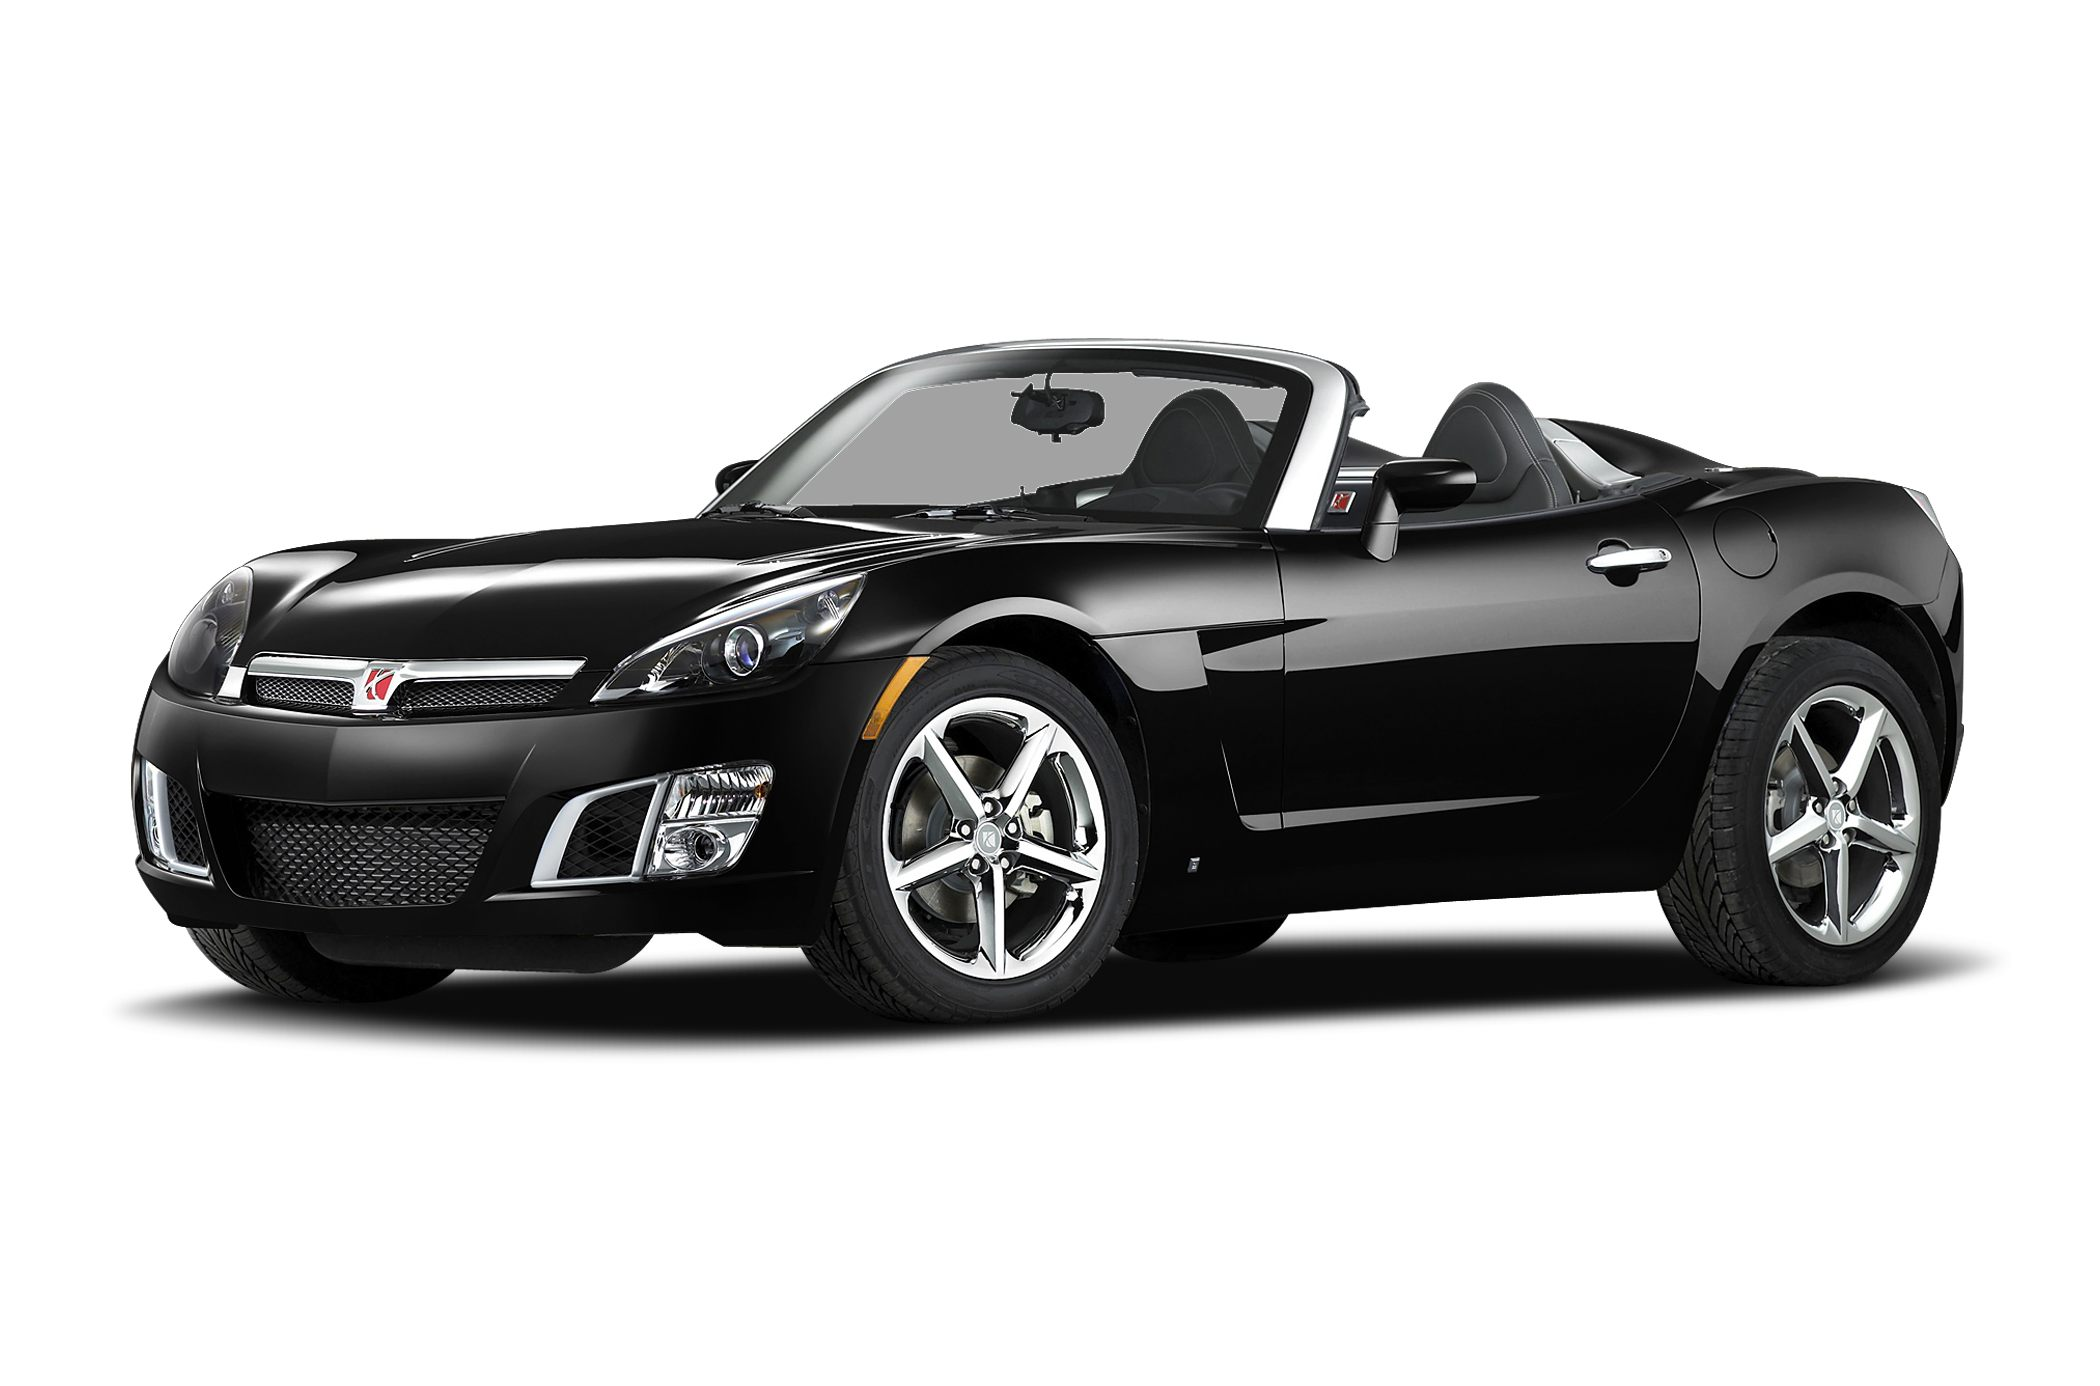 2008 Saturn Sky Red Line Convertible for sale in Flowood for $18,995 with 23,772 miles.